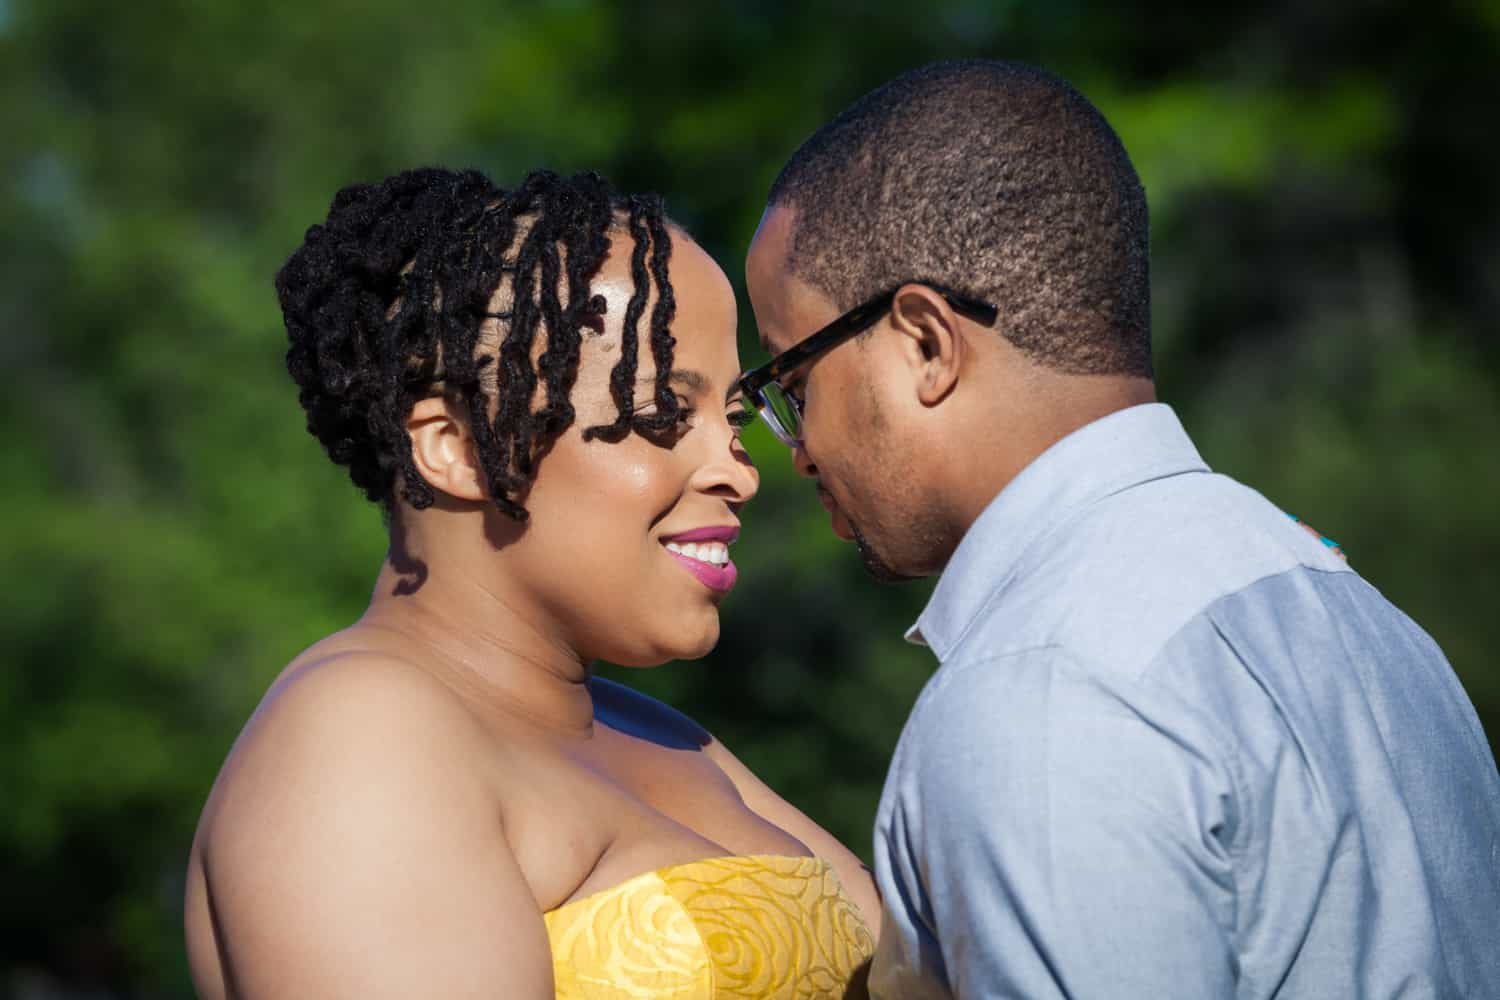 Engaged African American couple touching foreheads